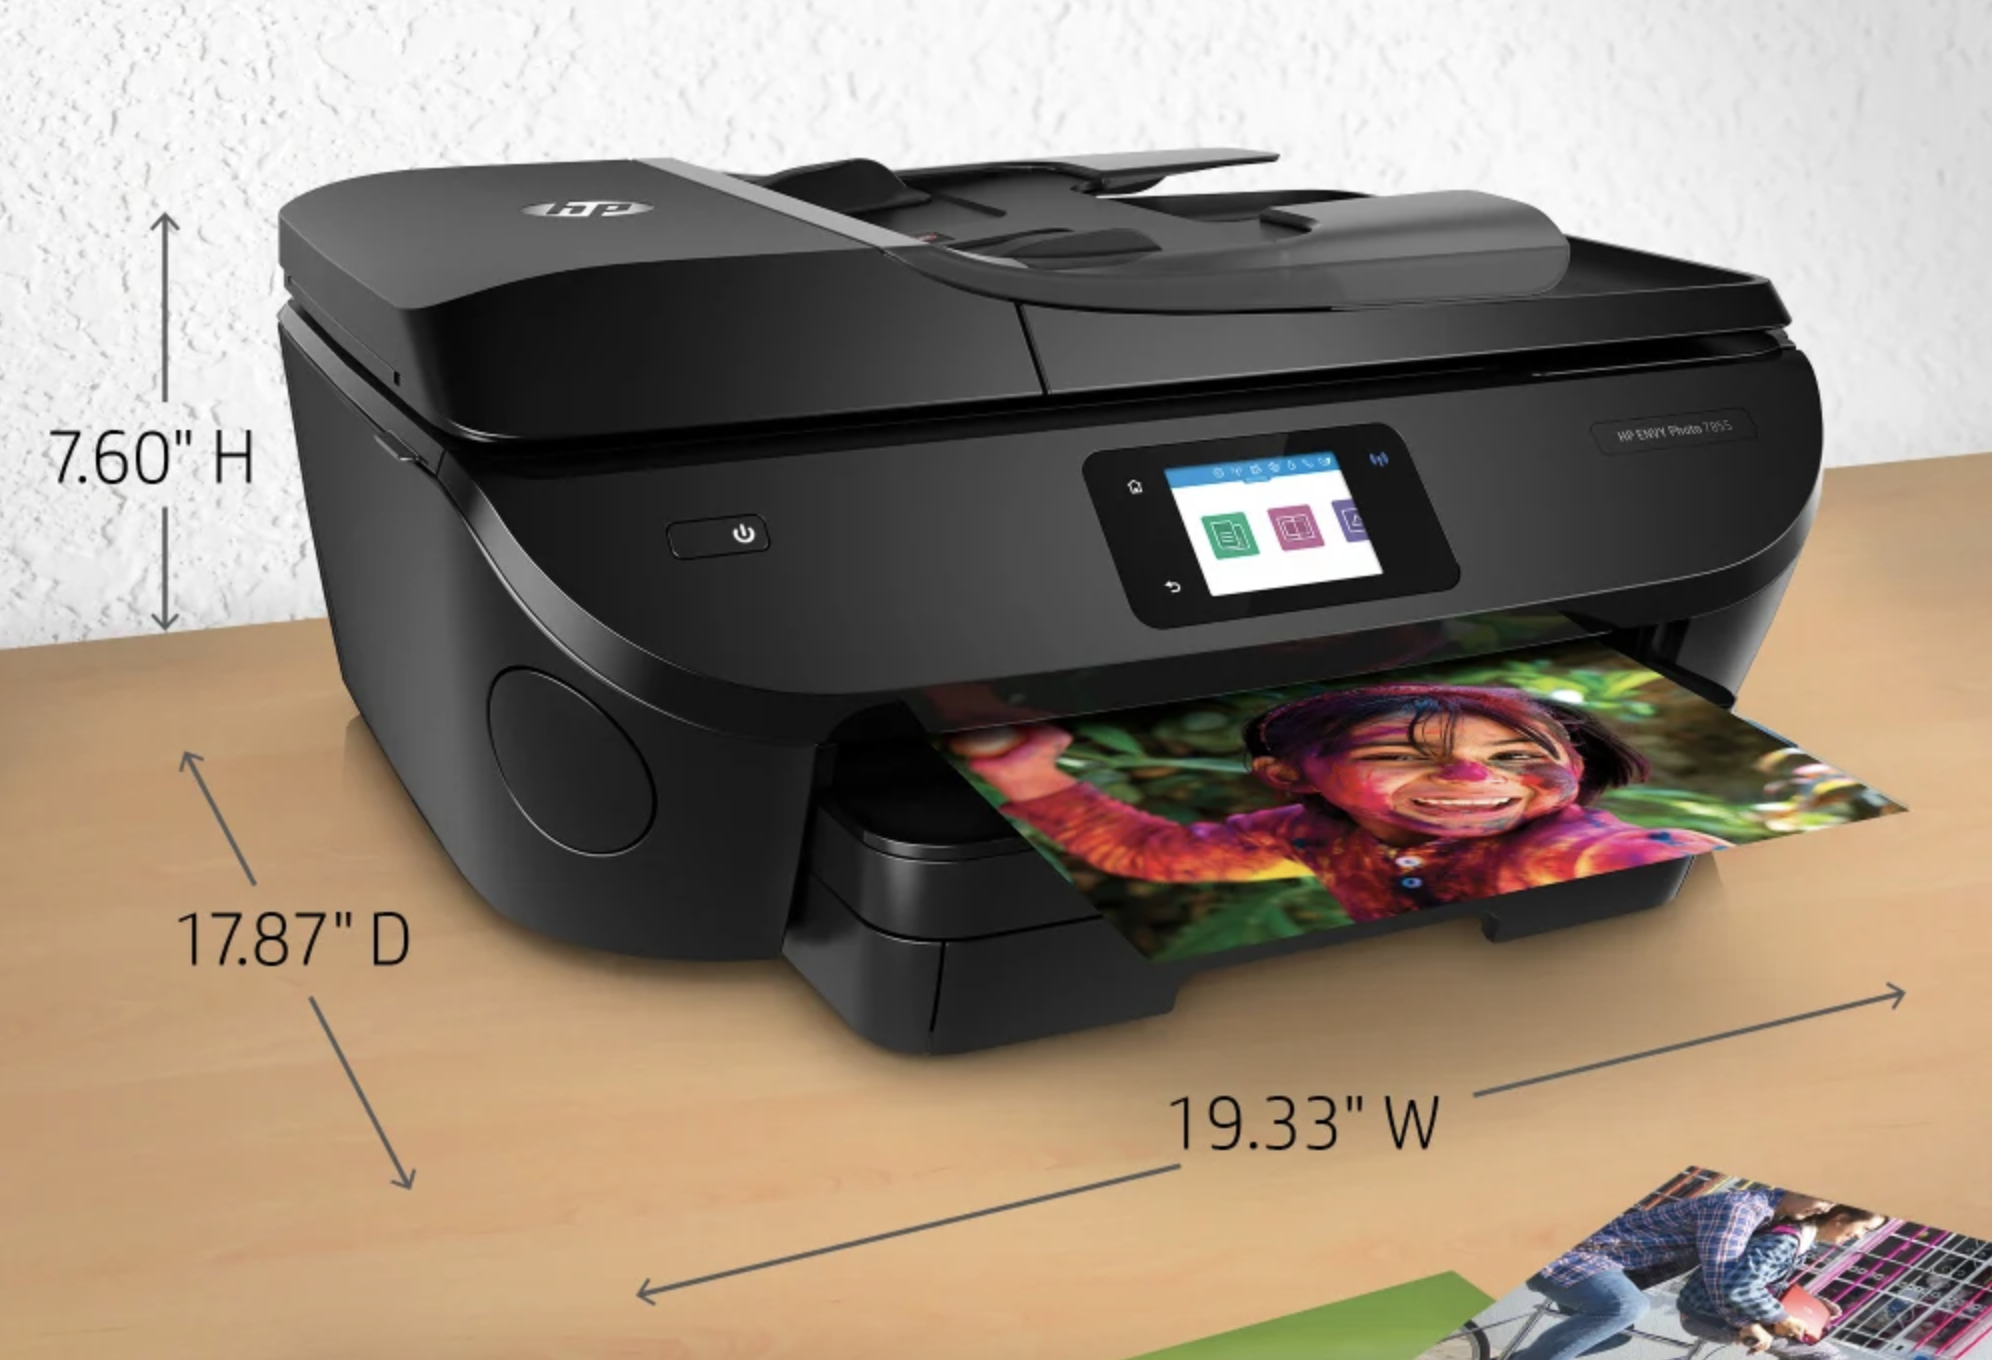 the HP Envy Photo 7855 Wireless InkJet All-In-One Color Printer printing a colorful photo